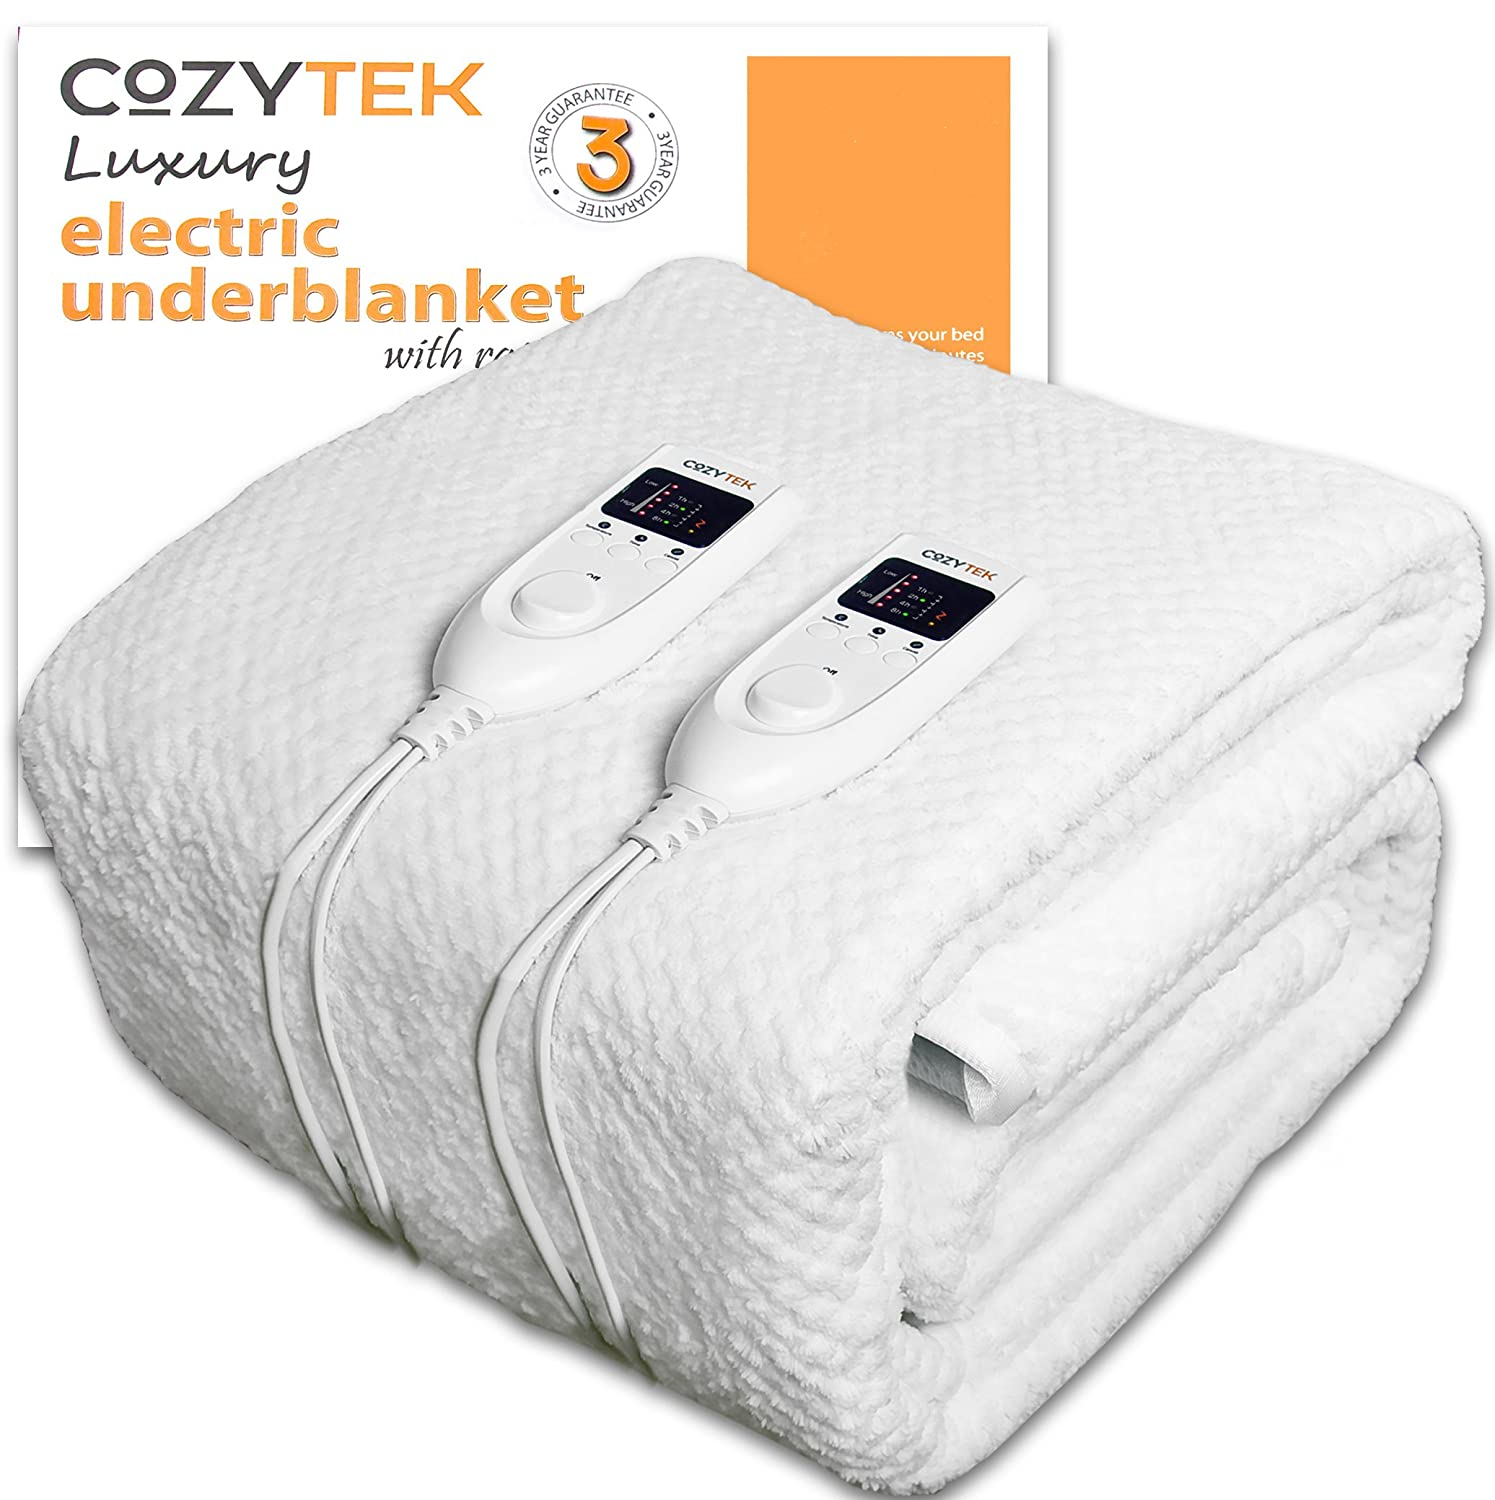 Double Electric Blanket Dual Control Double Bed Full Size 193 x 137cm Fully Fitted Heated Waffle Soft Fleece Under blanket Elasticated Skirt With Timer, 5 Comfort Settings Machine Washable Body Heating Function, Quick Heat Up Cozytek